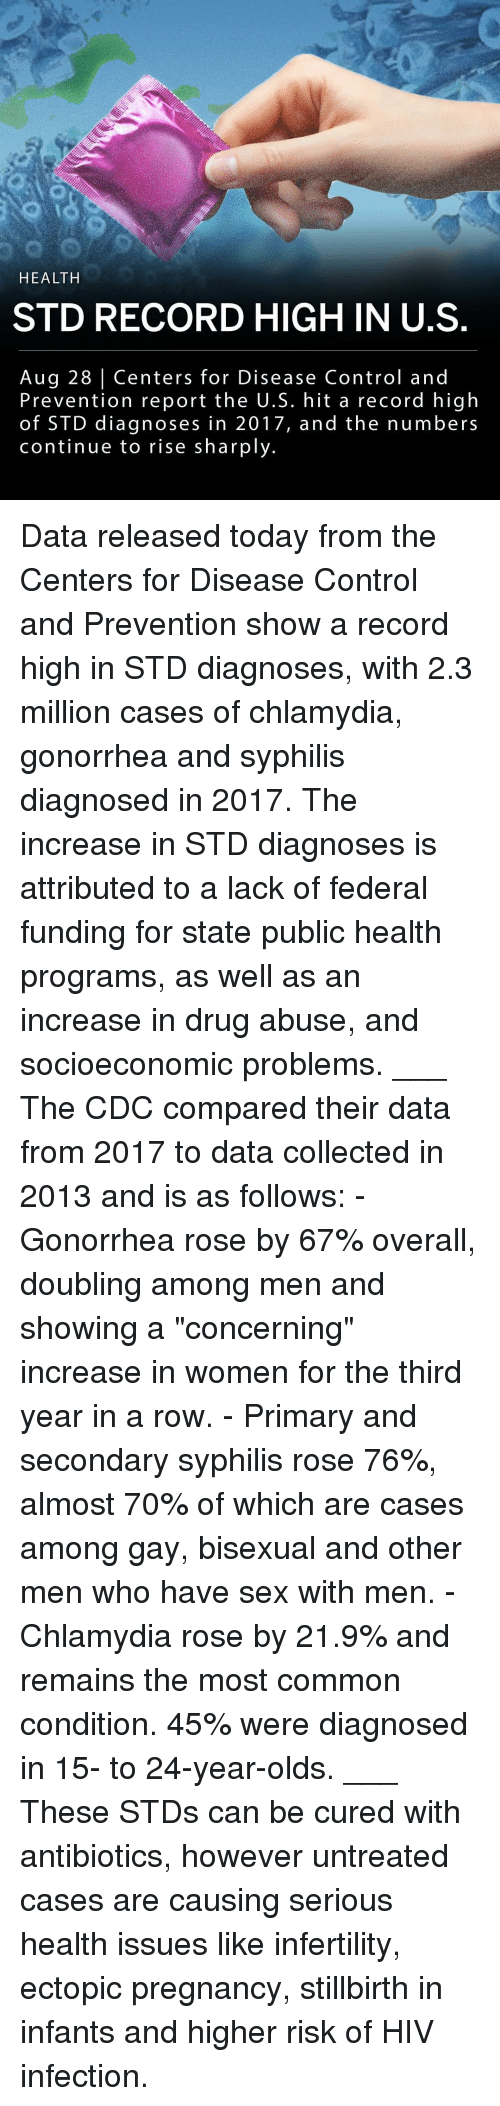 "cdc: HEALTH  STD RECORD HIGH IN U.S  Aug 28 Centers for Disease Control and  Prevention report the U.S. hit a record high  of STD diagnoses in 2017, and the numbers  continue to rise sharply. Data released today from the Centers for Disease Control and Prevention show a record high in STD diagnoses, with 2.3 million cases of chlamydia, gonorrhea and syphilis diagnosed in 2017. The increase in STD diagnoses is attributed to a lack of federal funding for state public health programs, as well as an increase in drug abuse, and socioeconomic problems. ___ The CDC compared their data from 2017 to data collected in 2013 and is as follows: - Gonorrhea rose by 67% overall, doubling among men and showing a ""concerning"" increase in women for the third year in a row. - Primary and secondary syphilis rose 76%, almost 70% of which are cases among gay, bisexual and other men who have sex with men. - Chlamydia rose by 21.9% and remains the most common condition. 45% were diagnosed in 15- to 24-year-olds. ___ These STDs can be cured with antibiotics, however untreated cases are causing serious health issues like infertility, ectopic pregnancy, stillbirth in infants and higher risk of HIV infection."